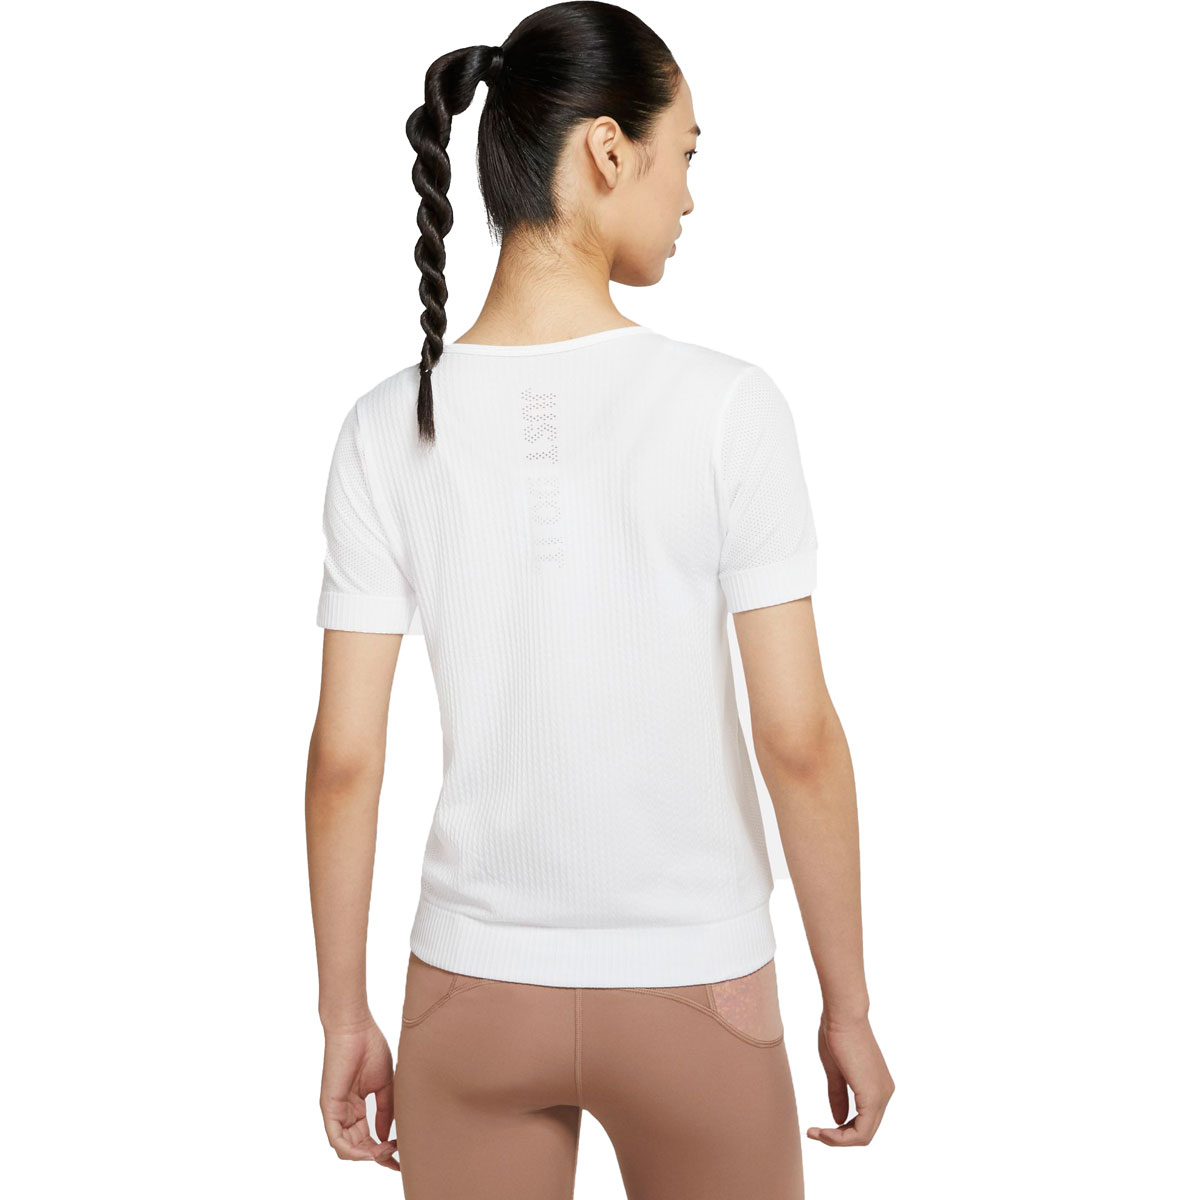 Women's Nike Infinite Short-Sleeve Running Top - Color: White/Reflective Silver - Size: XS, White/Reflective Silver, large, image 2